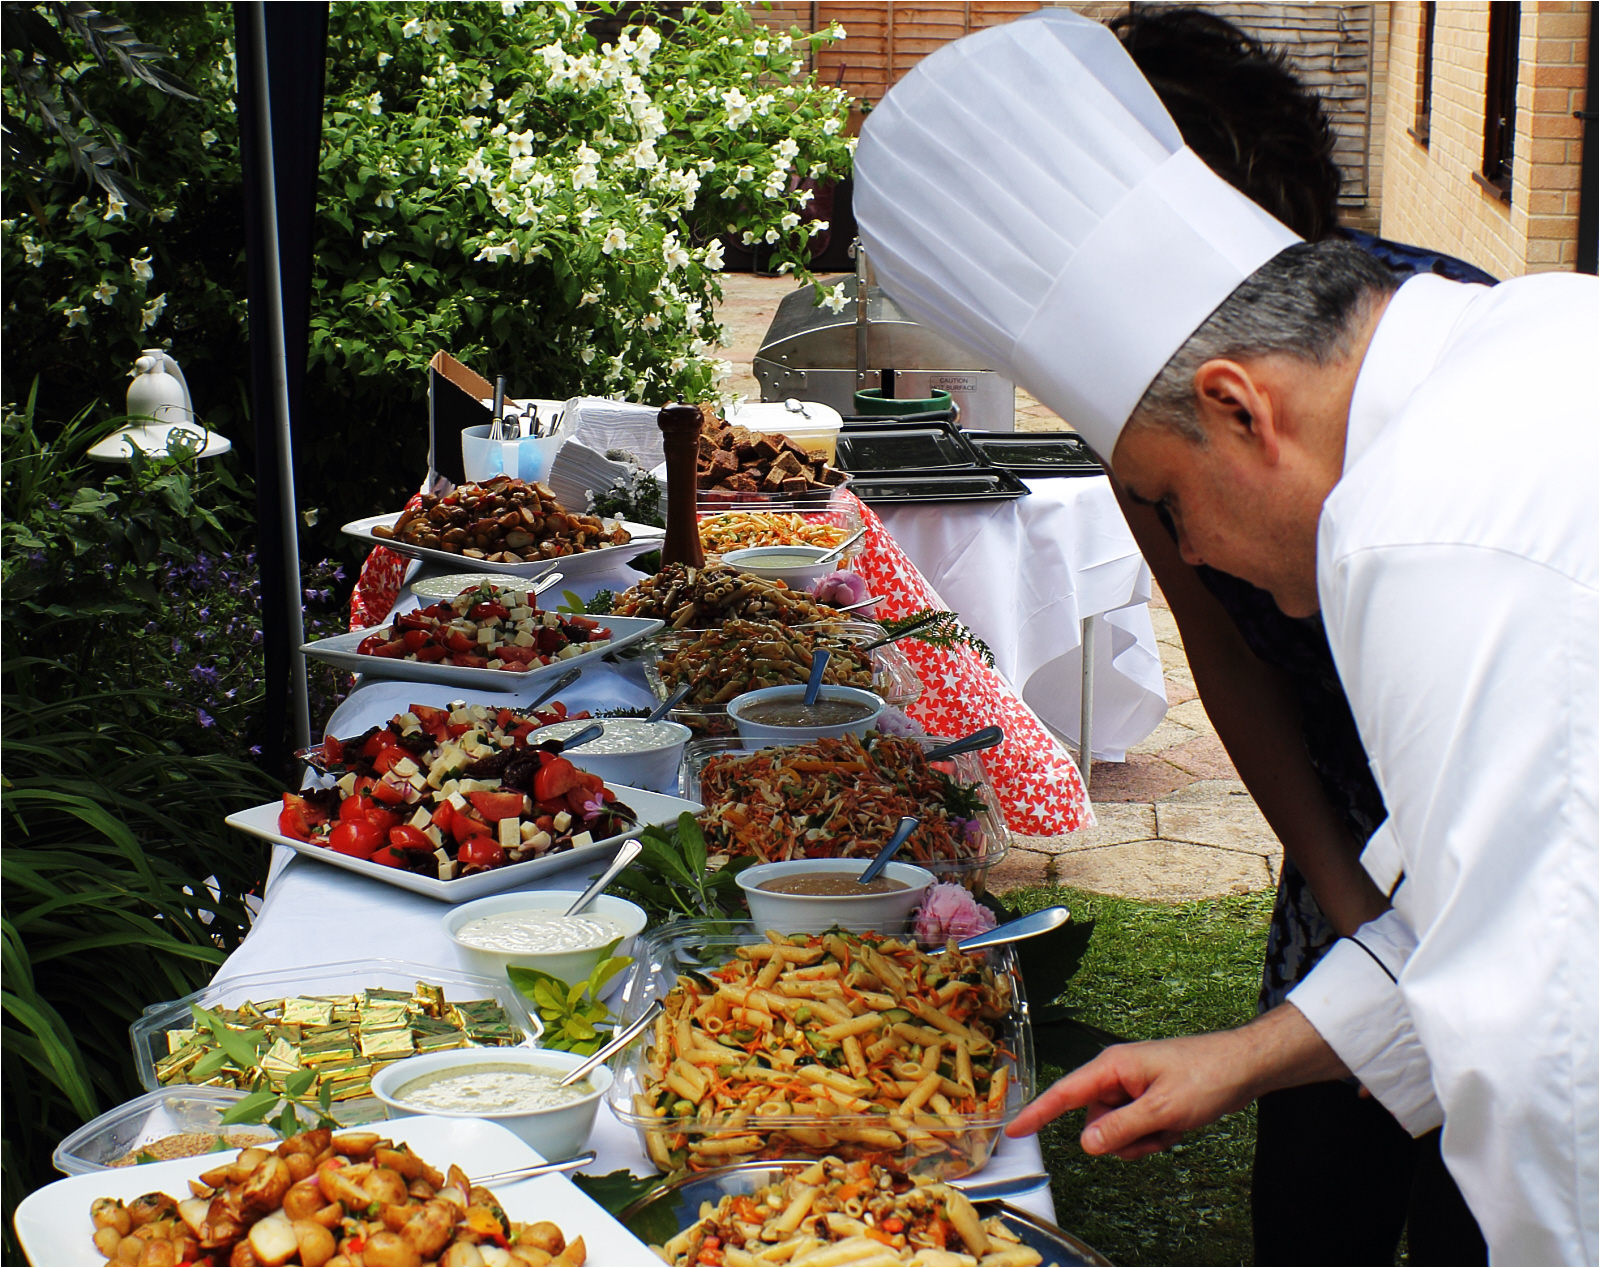 Executive Direct can provide total management for private or corporate events